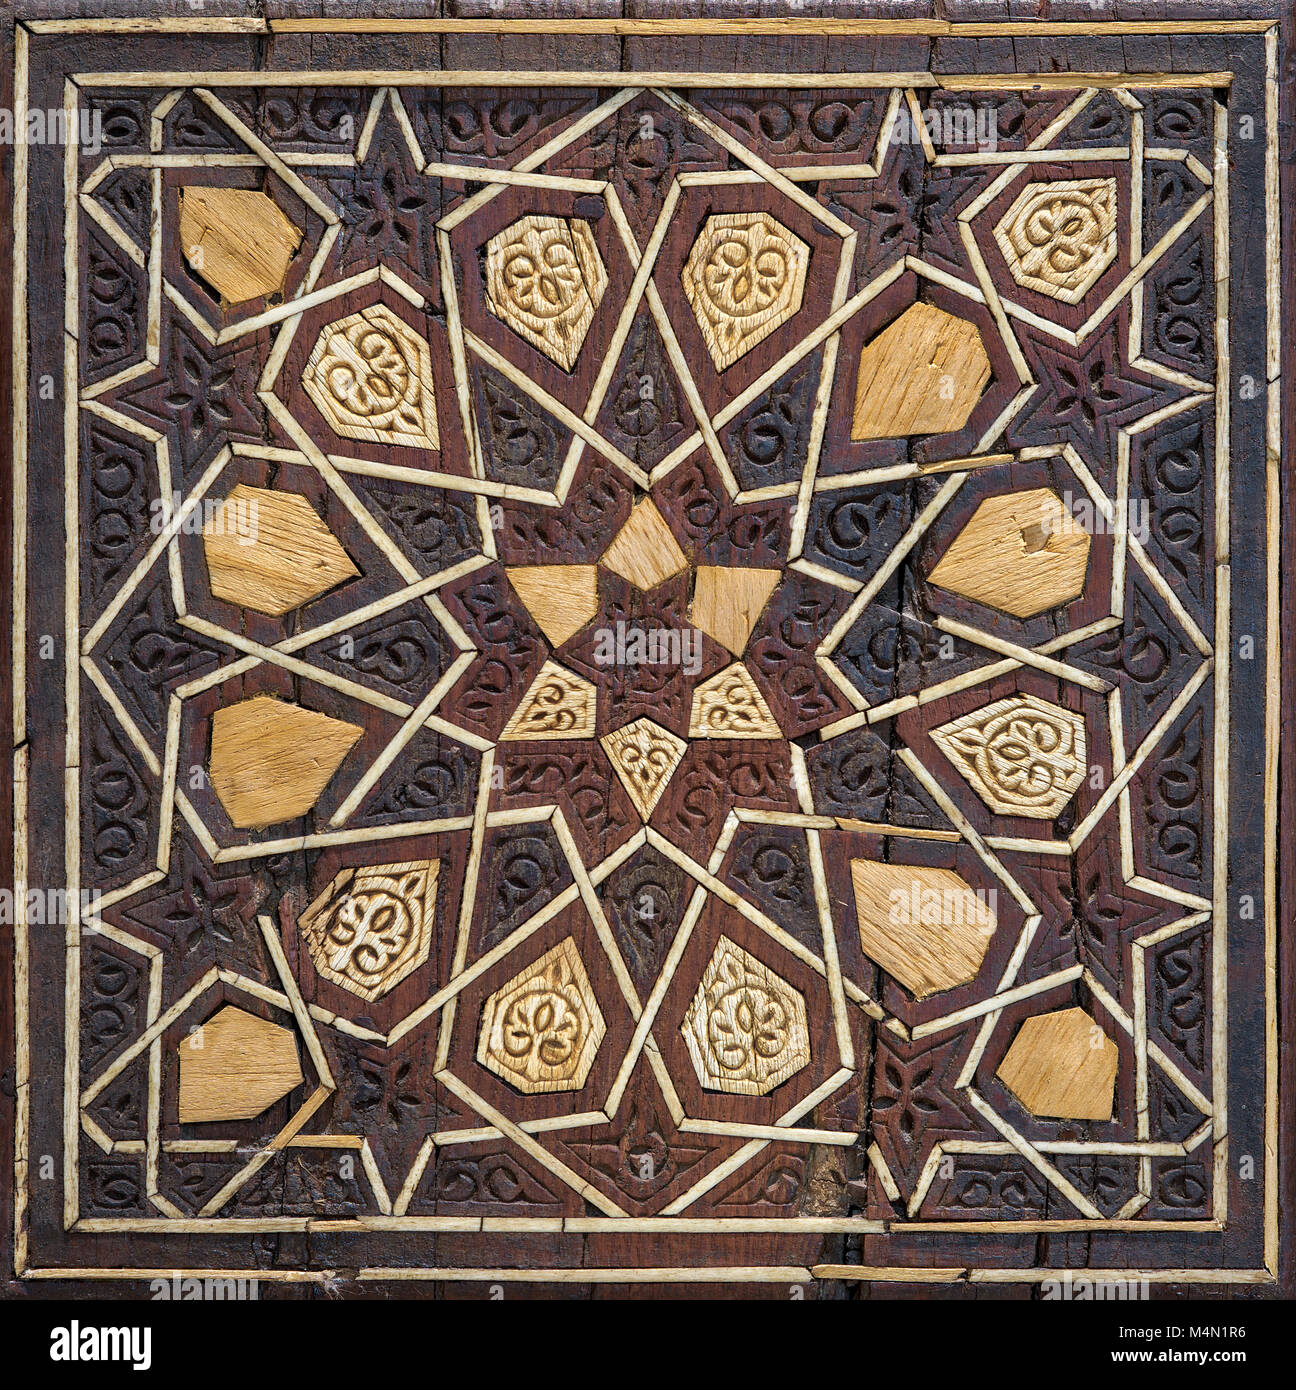 Closeup of arabesque seamless geometric pattern on an ancient wooden pulpit (Minbar) brought from the mosque of - Stock Image